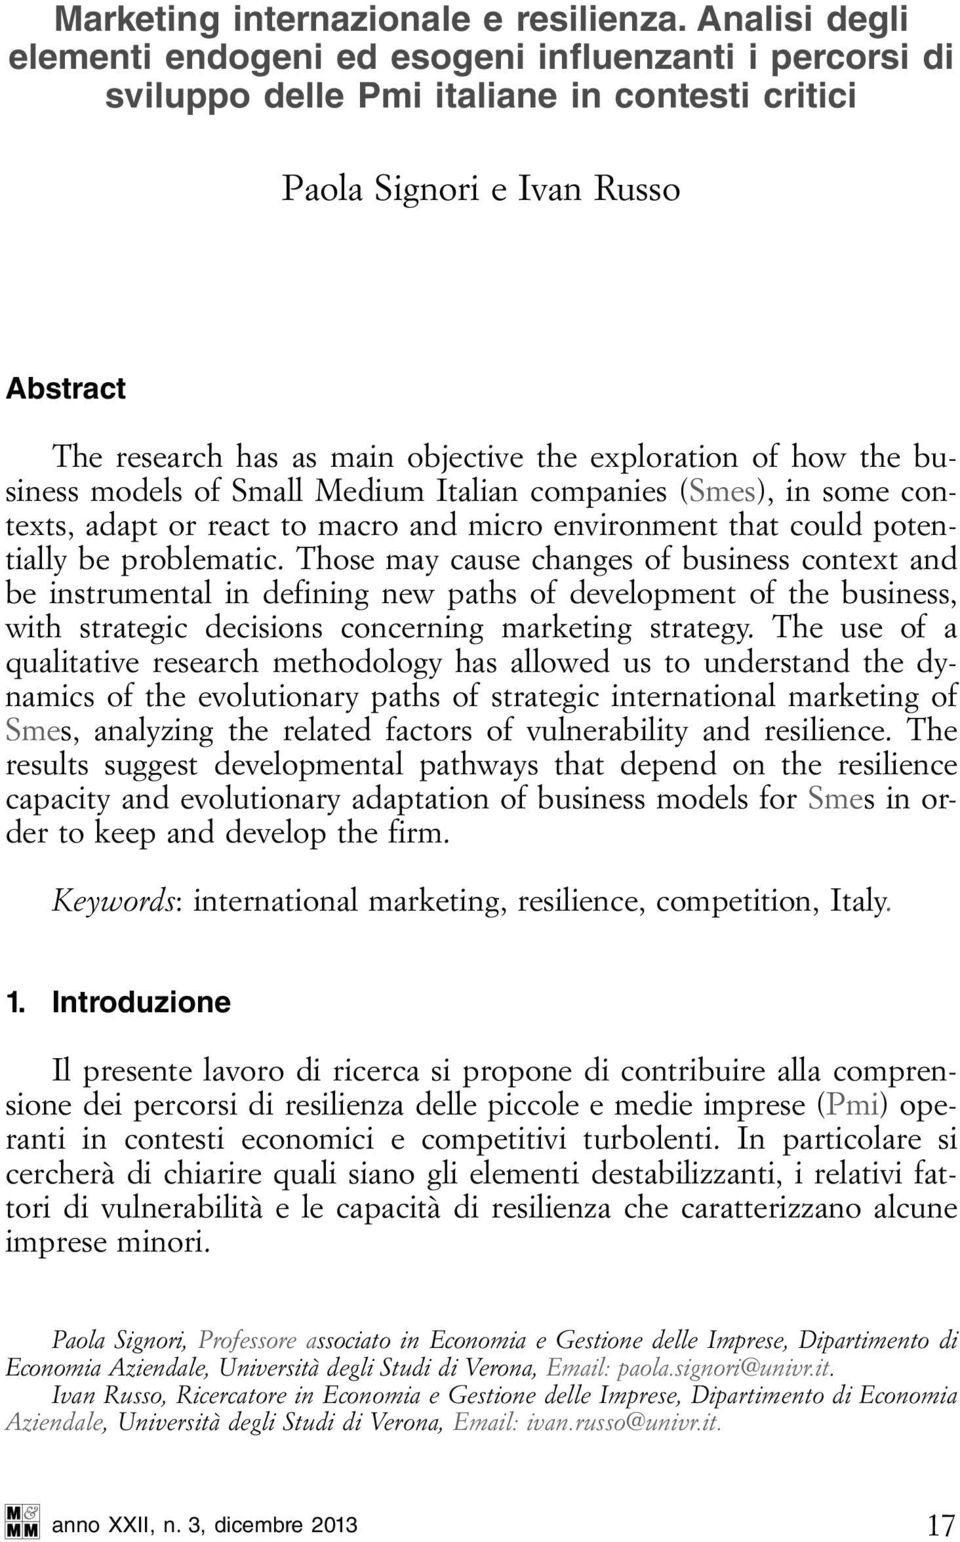 exploration of how the business models of Small Medium Italian companies (Smes), in some contexts, adapt or react to macro and micro environment that could potentially be problematic.